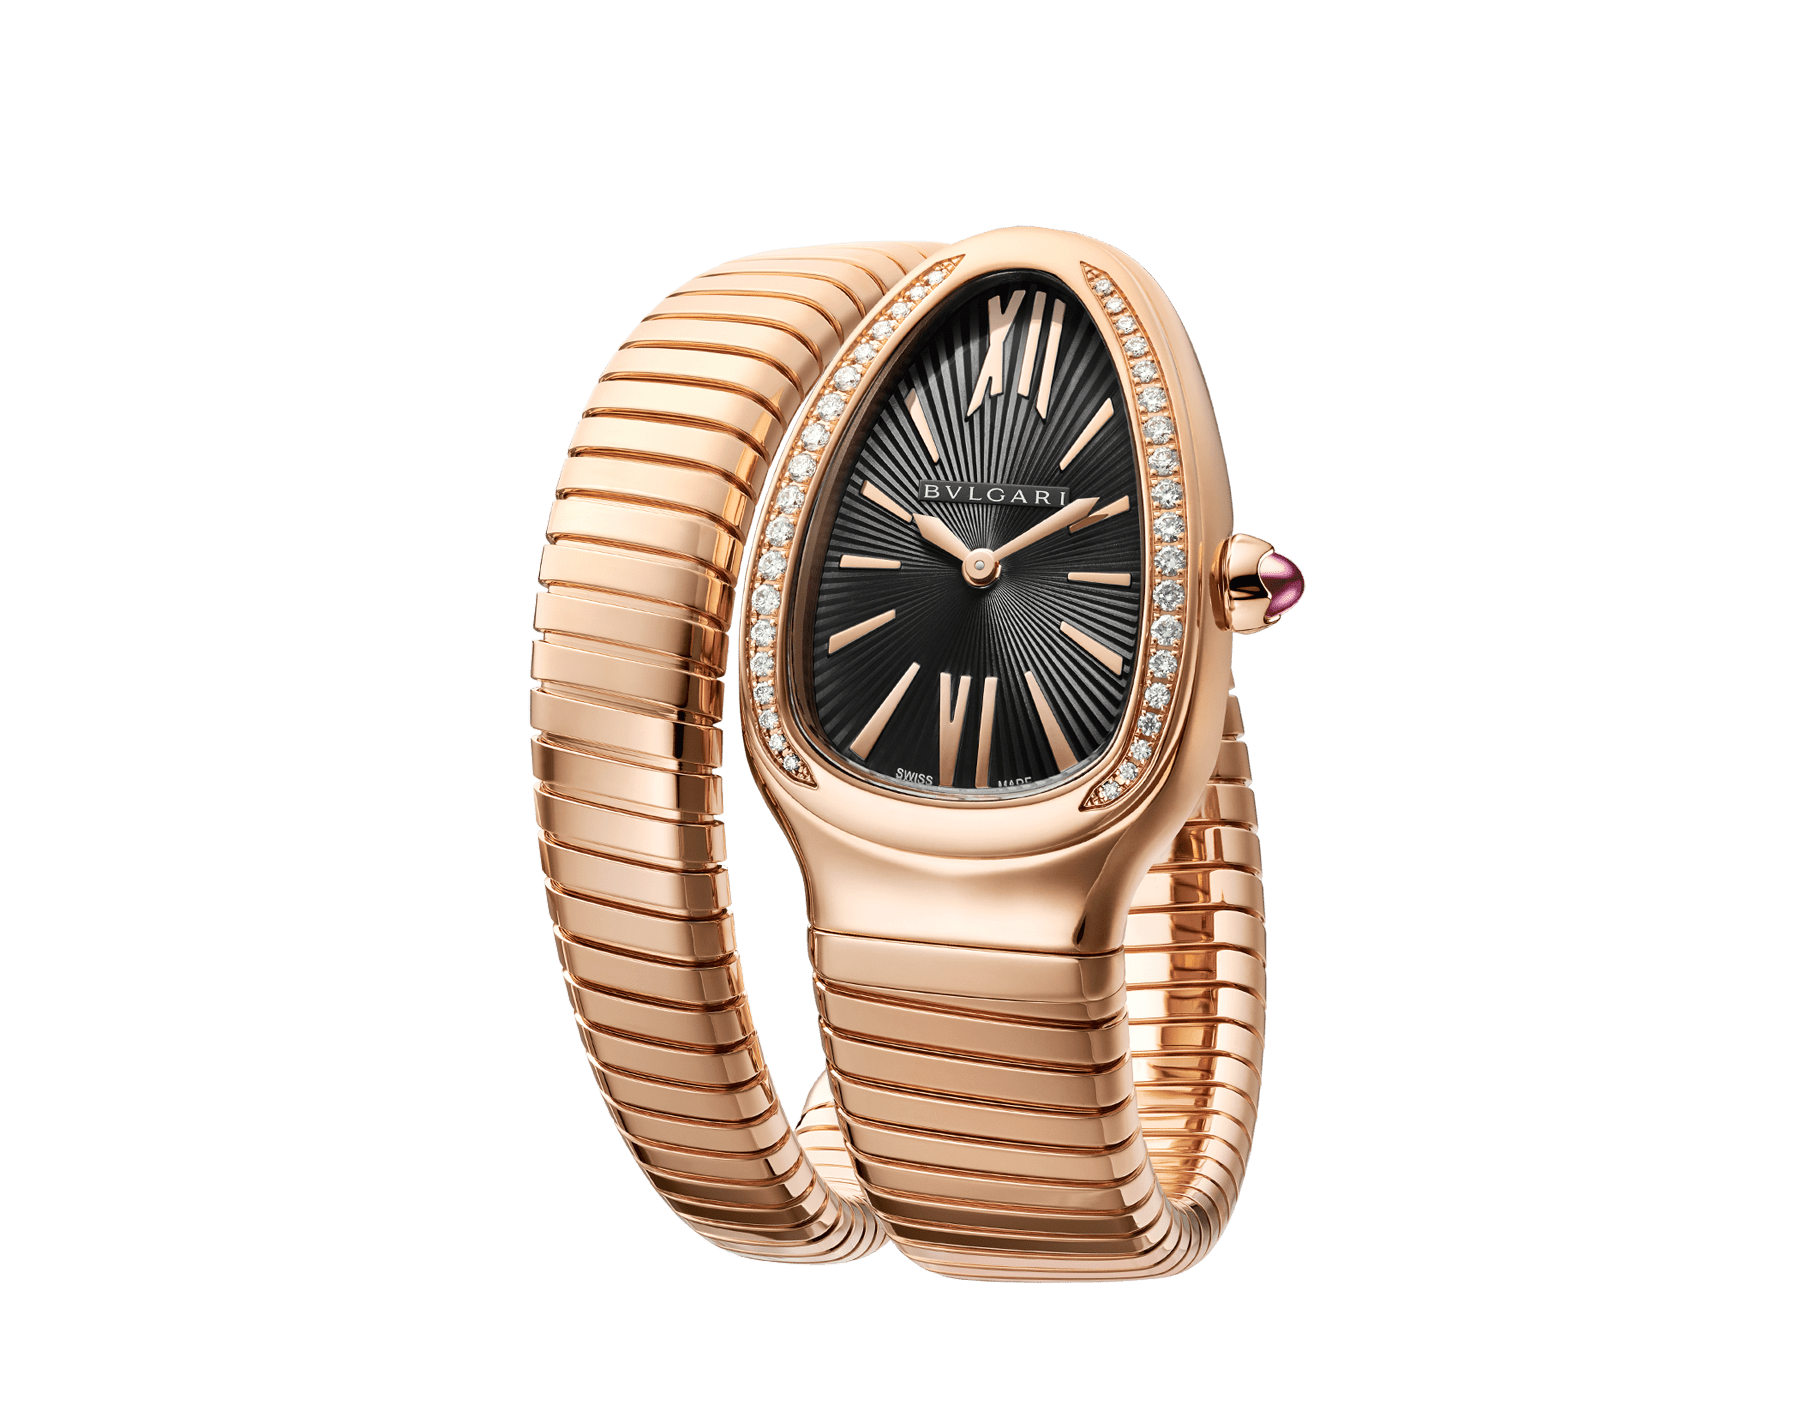 Serpenti Tubogas single spiral watch with 18 kt rose gold case set with brilliant cut diamond, black opaline dial and 18kt rose gold bracelet. 101815 image 2